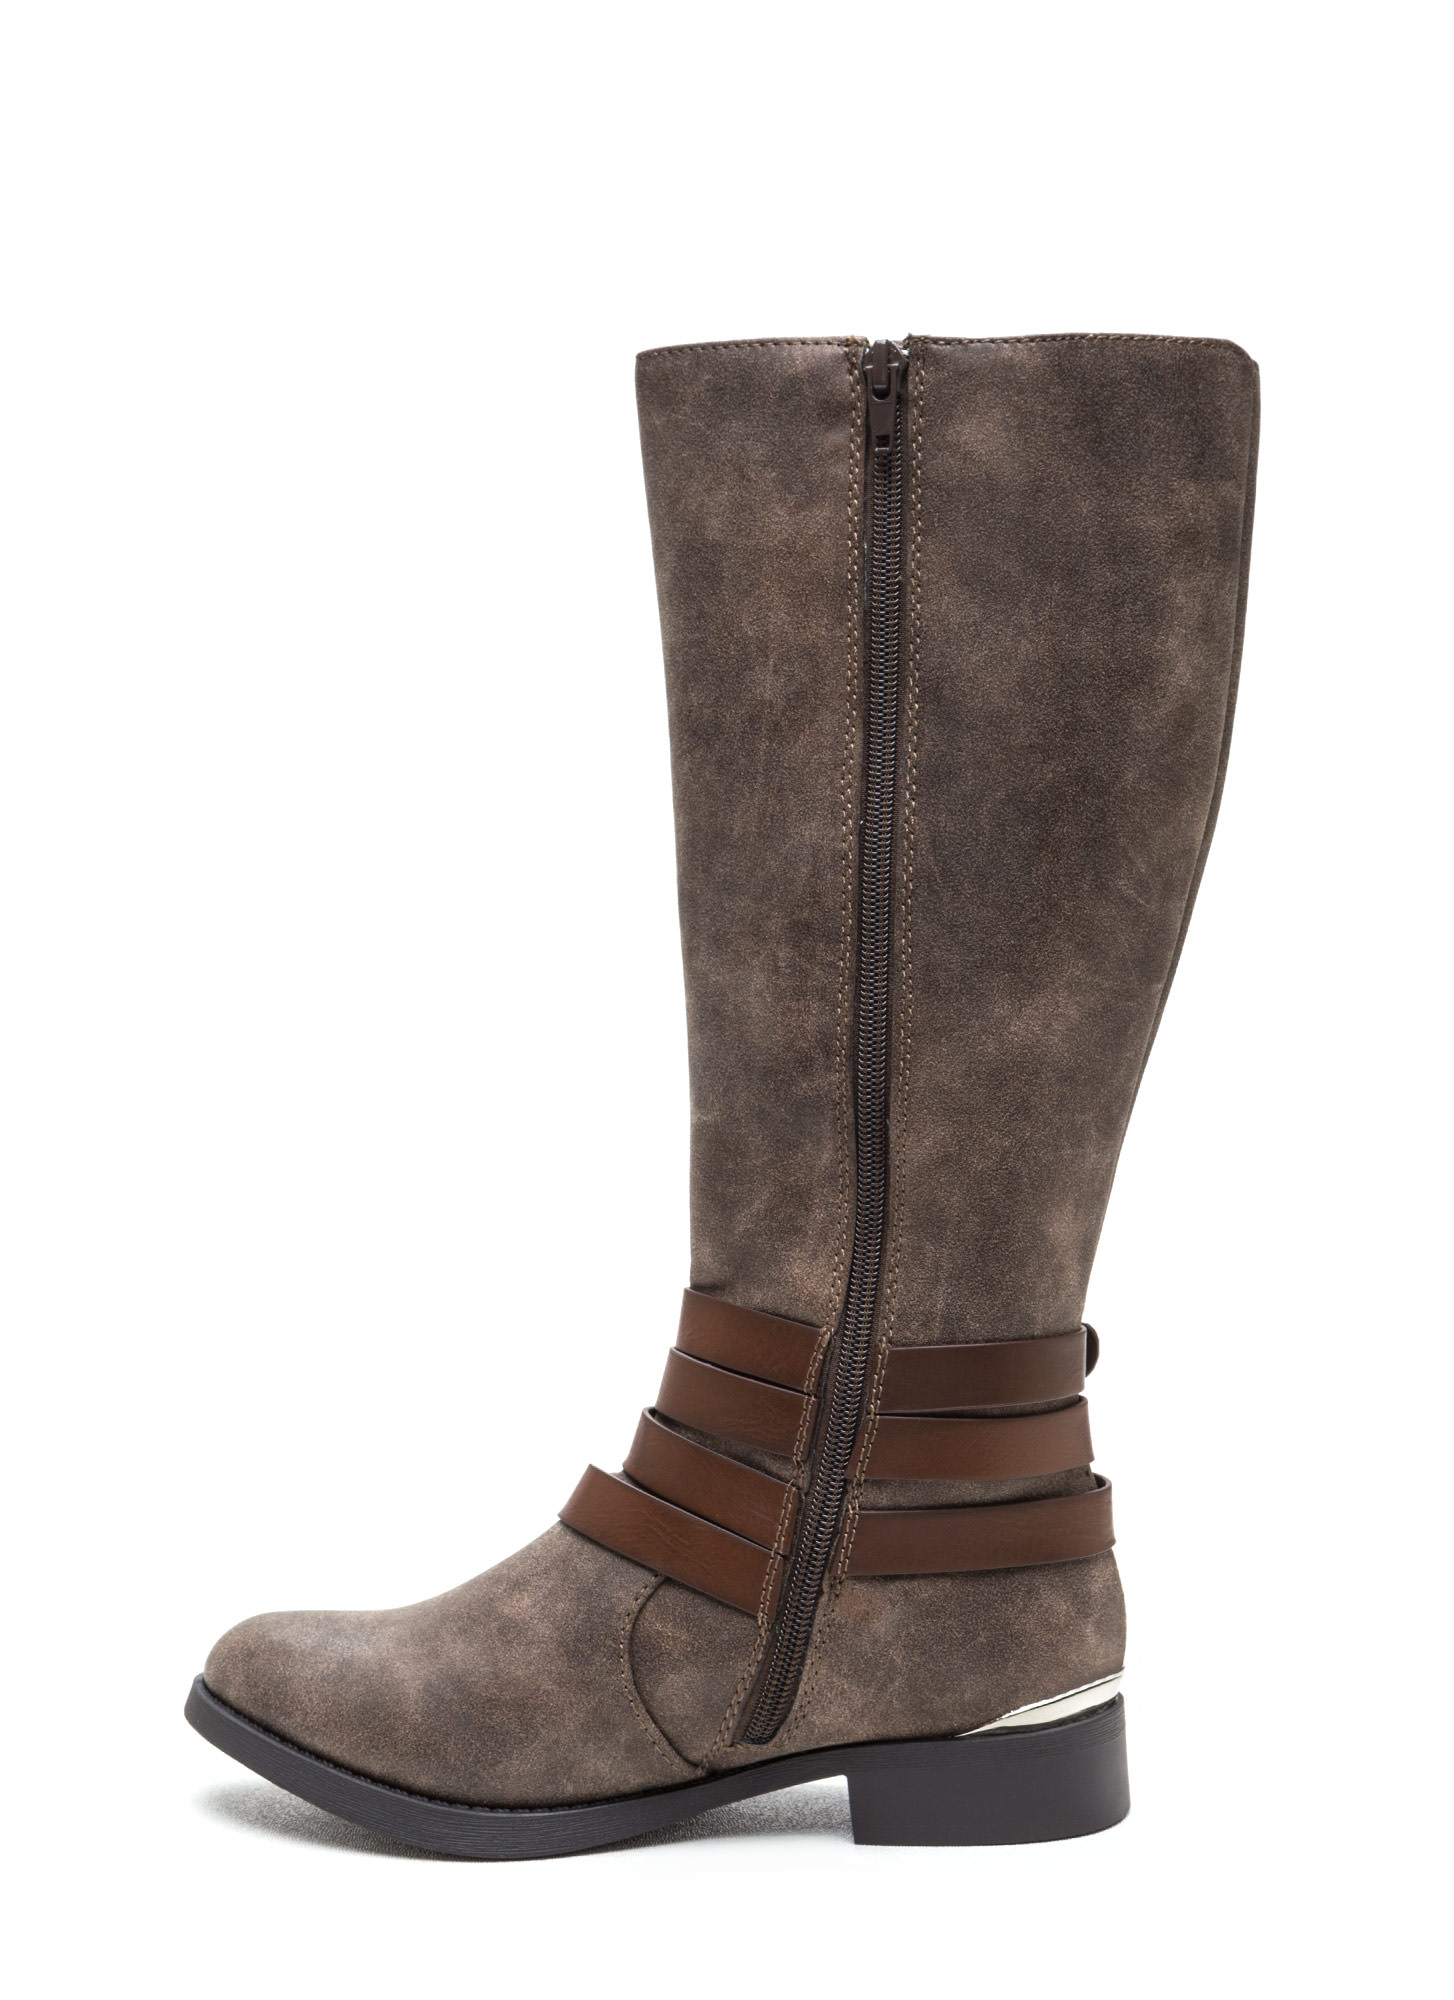 Kick Up Your Heels Strappy Boots TAUPEBROWN